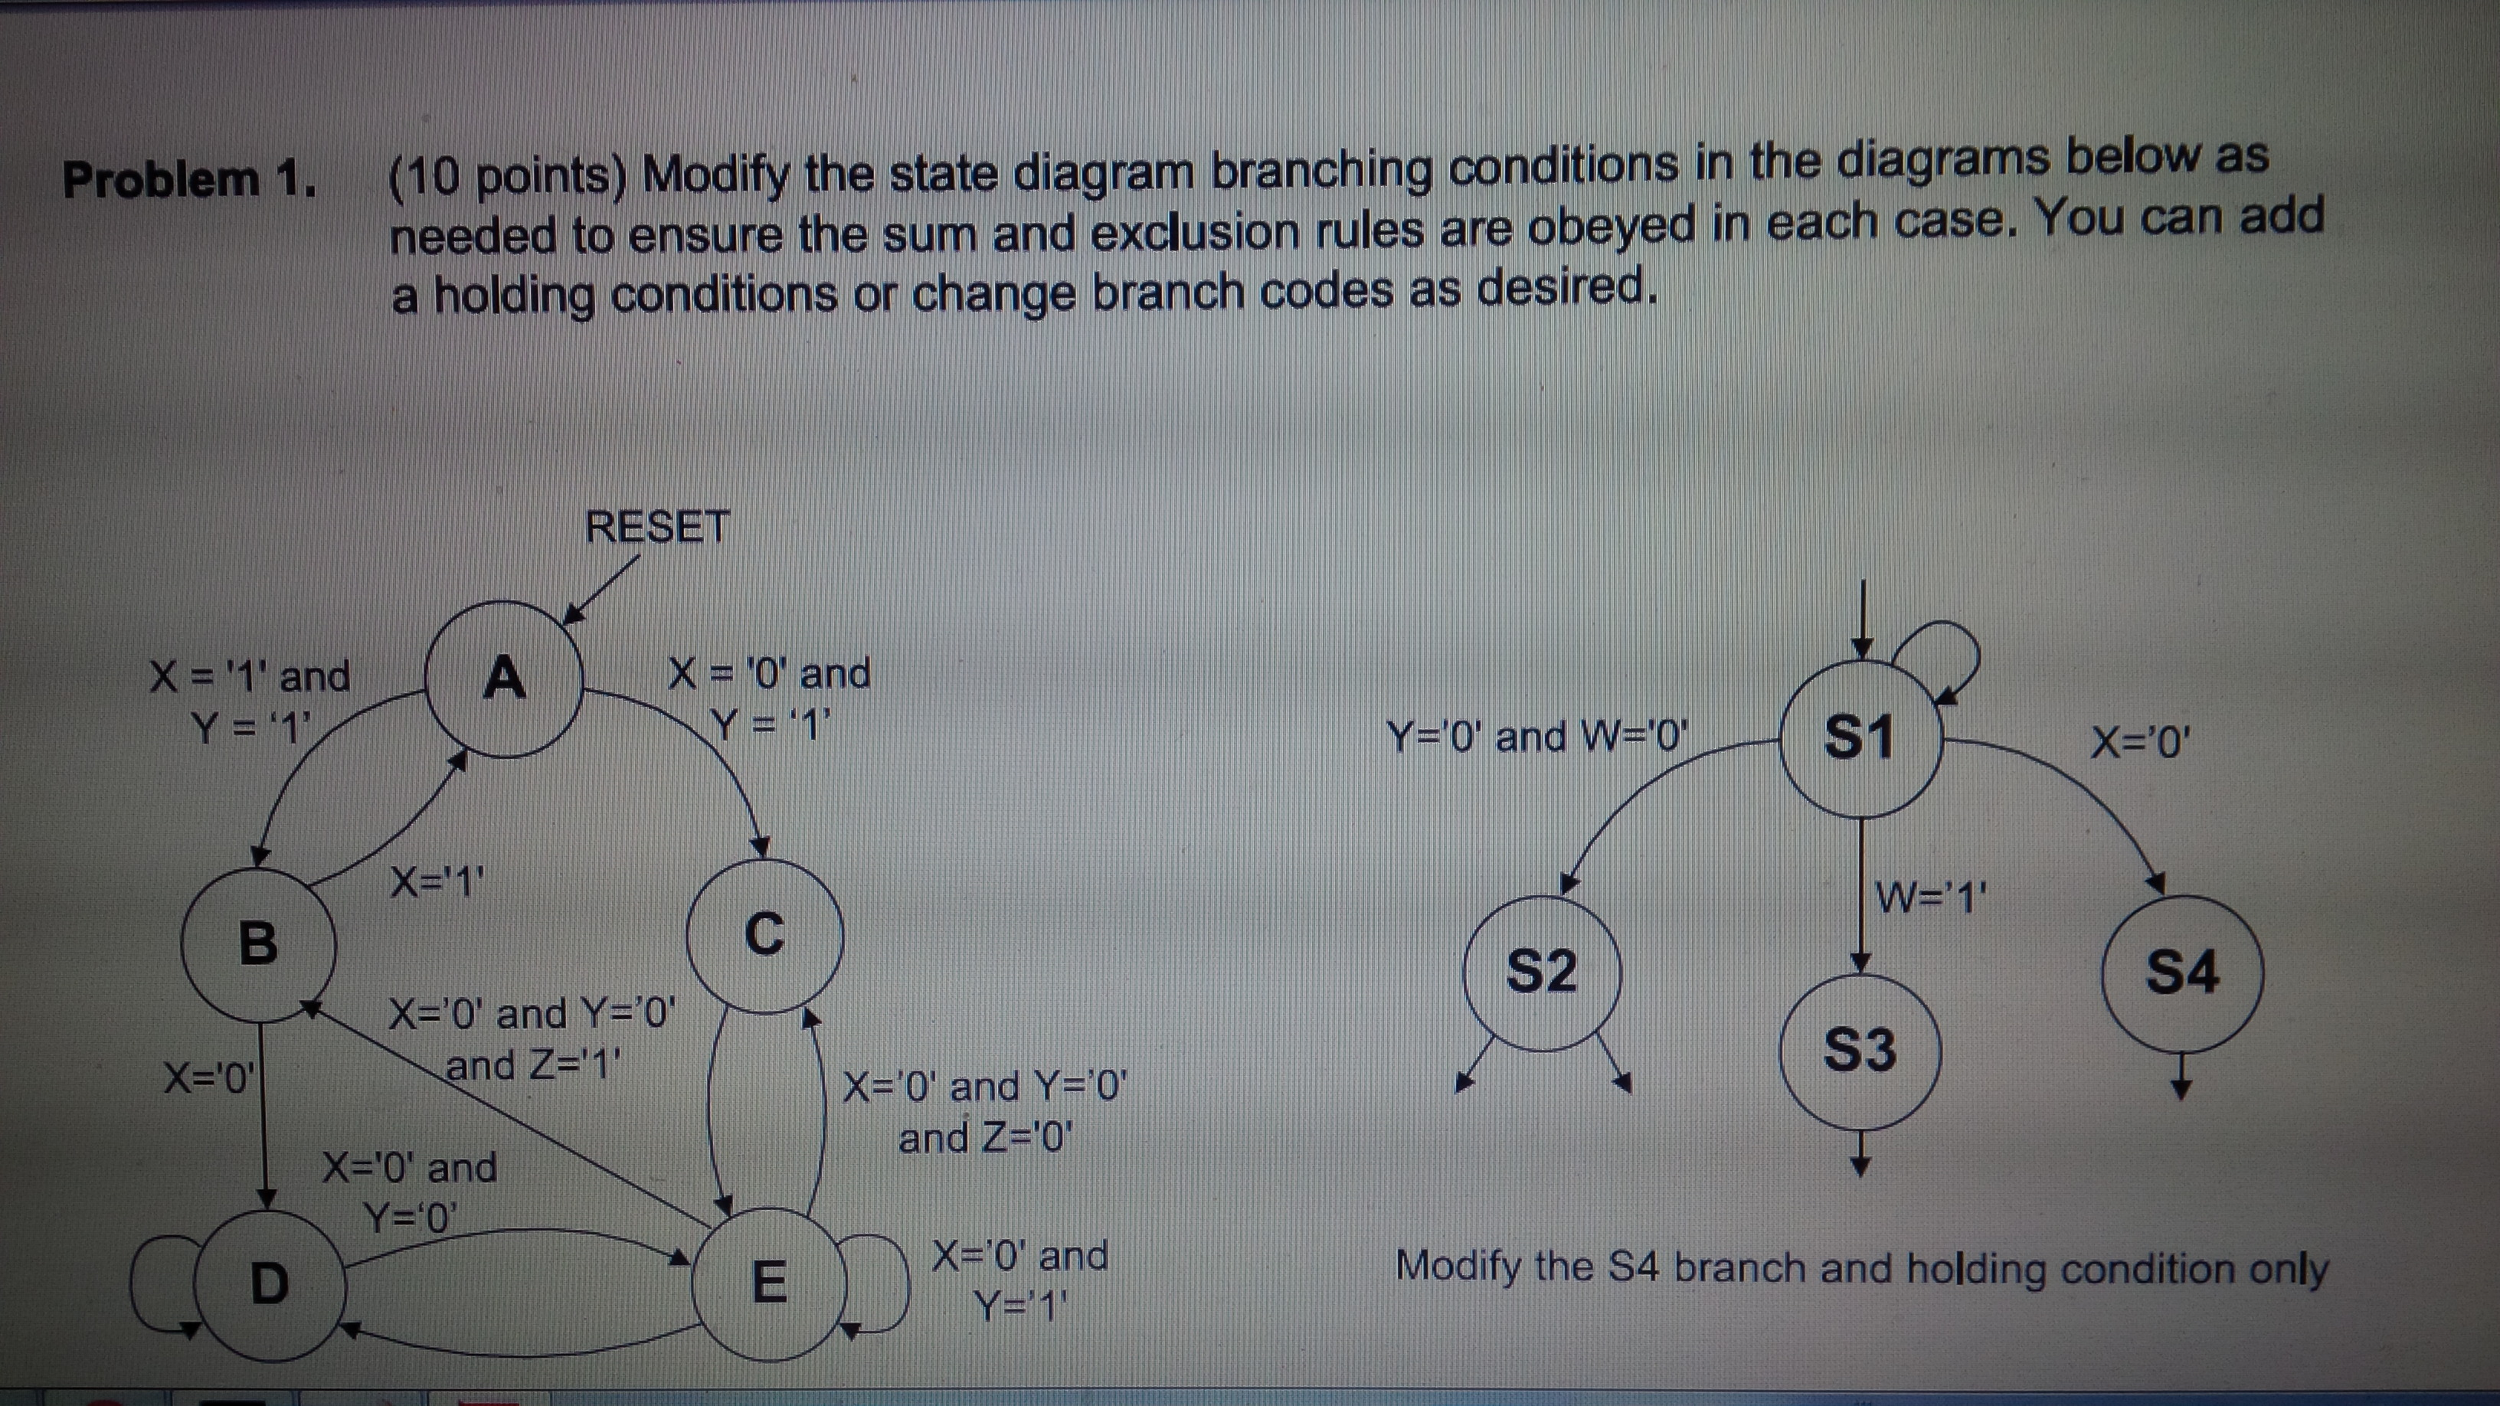 Modify the state diagram branching conditions in t